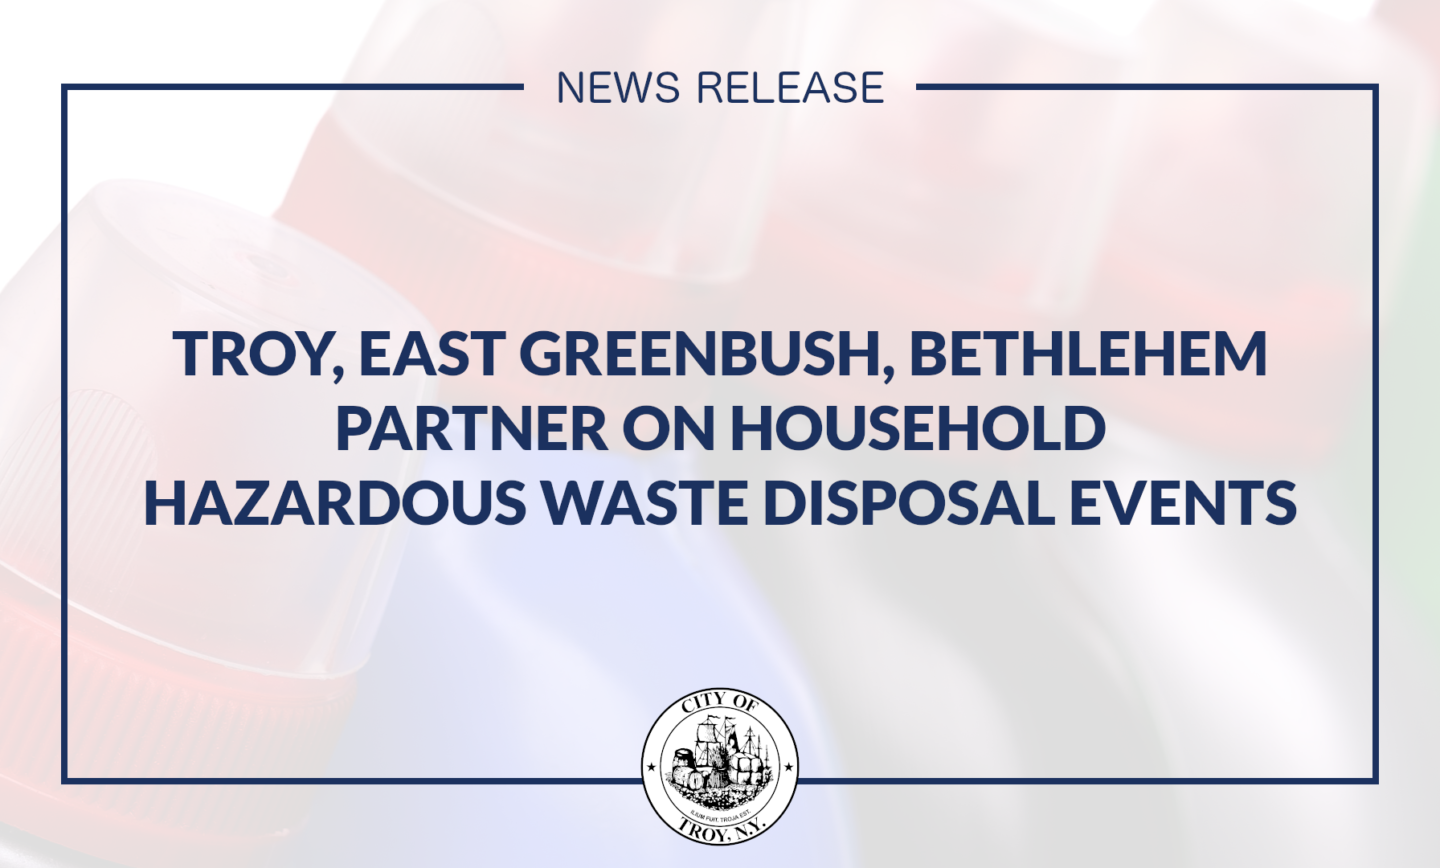 Troy, East Greenbush, Bethlehem Partnering on Household Hazardous Waste Disposal Events